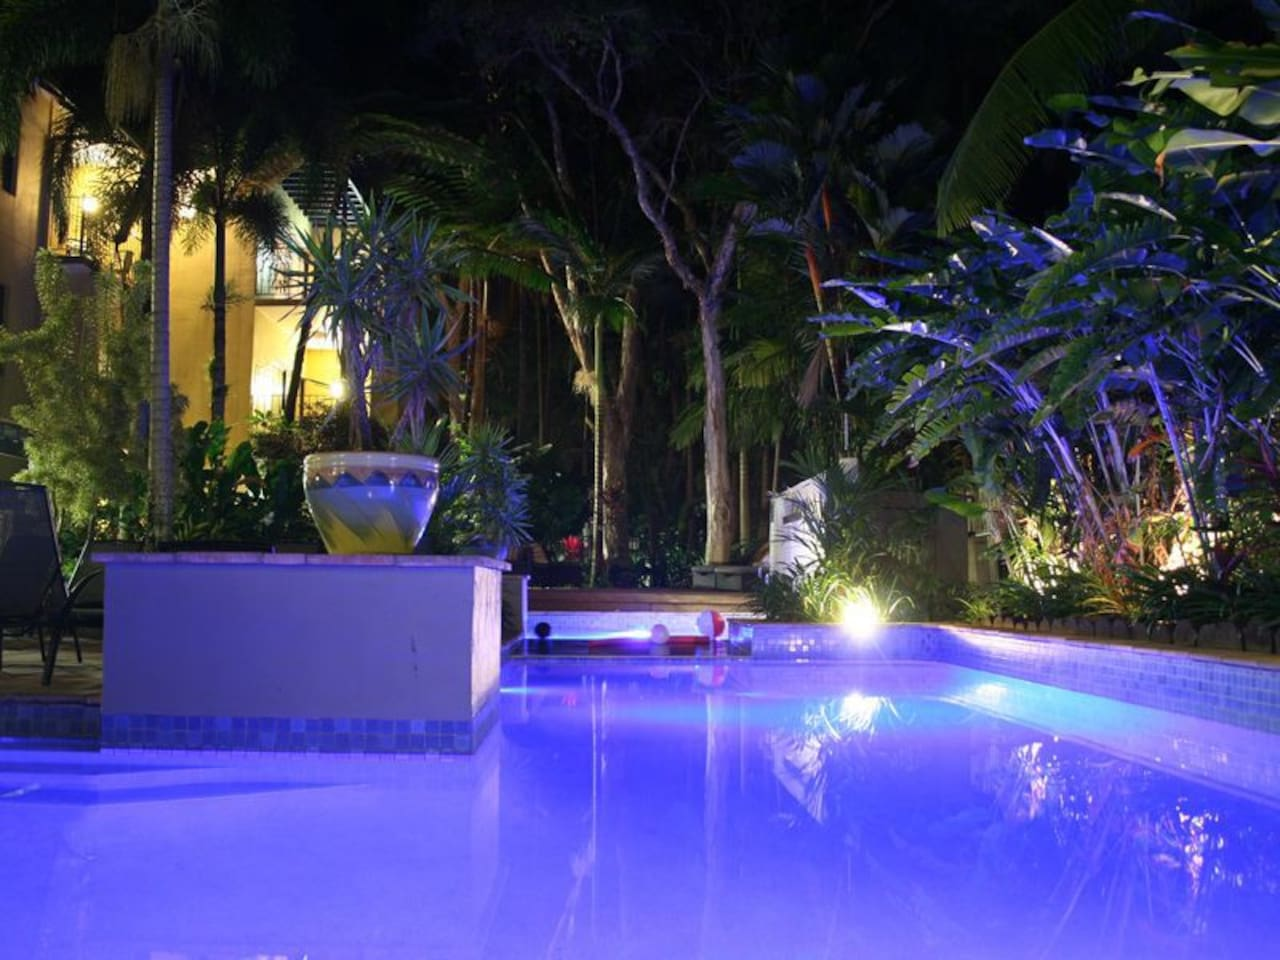 night lights our lovely heated pool and spa to the season come visit our Paradise